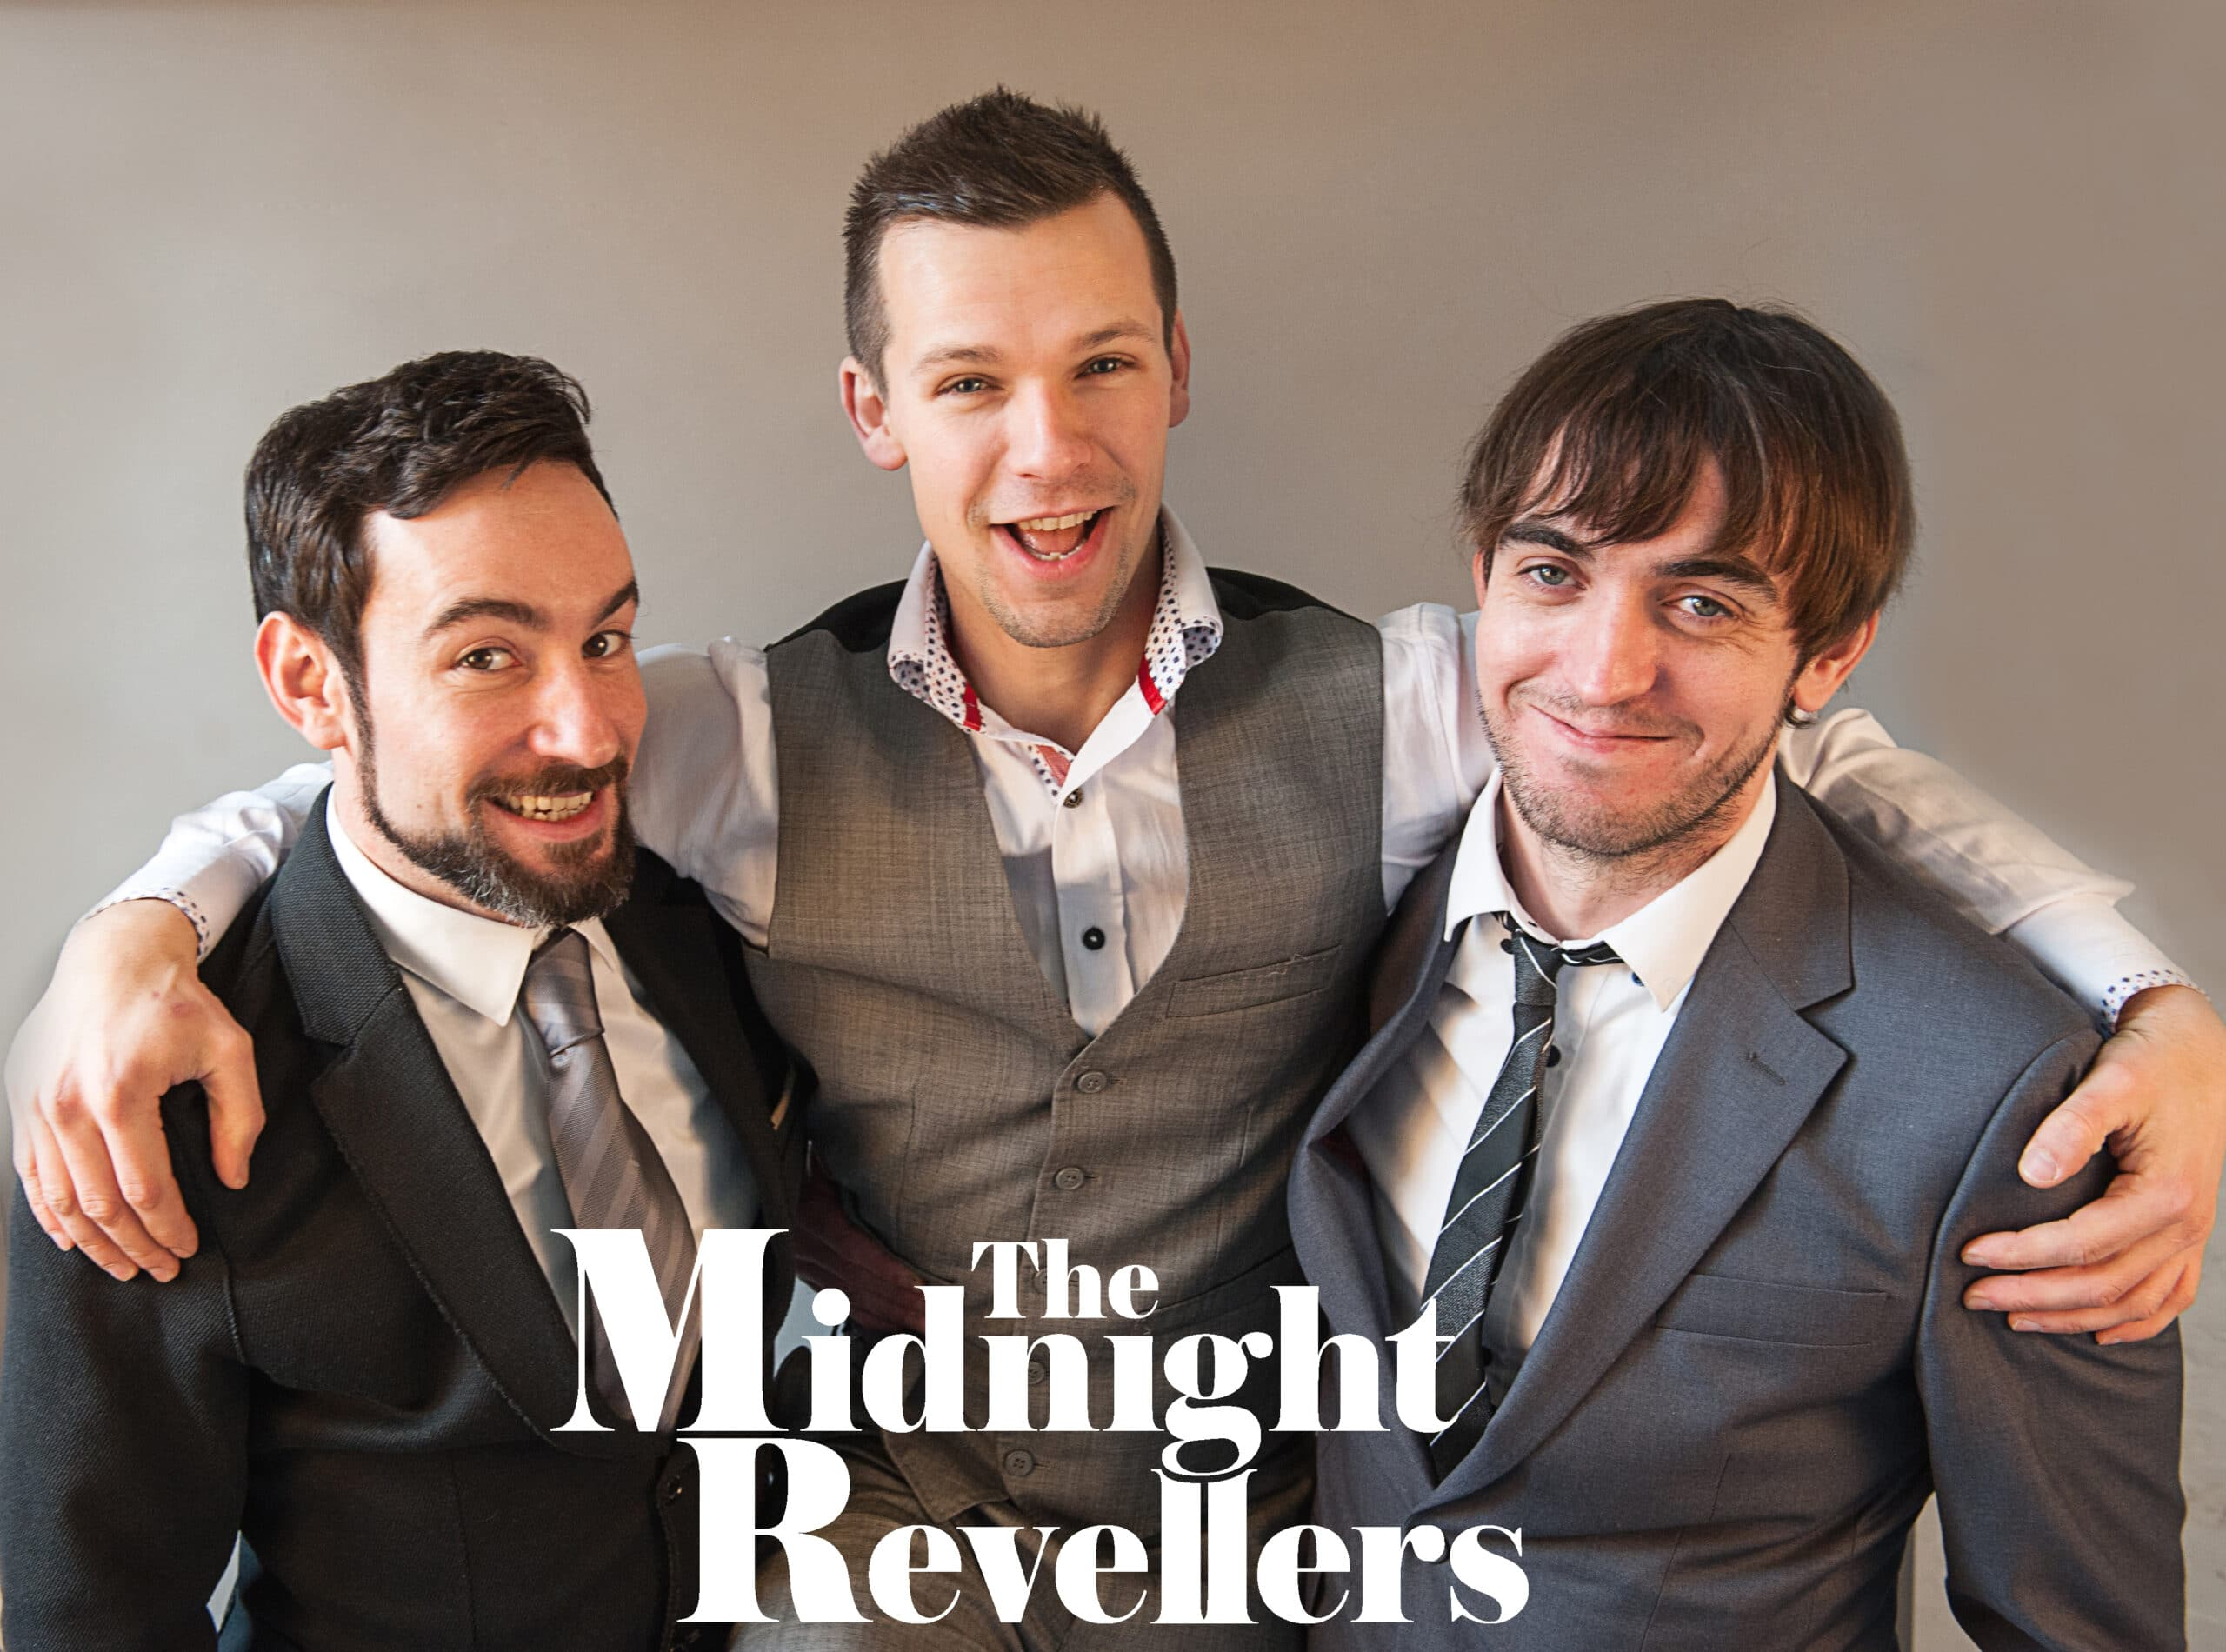 3 piece wedding and corporate band Midnight Revellers for hire with Drinks Reception Music